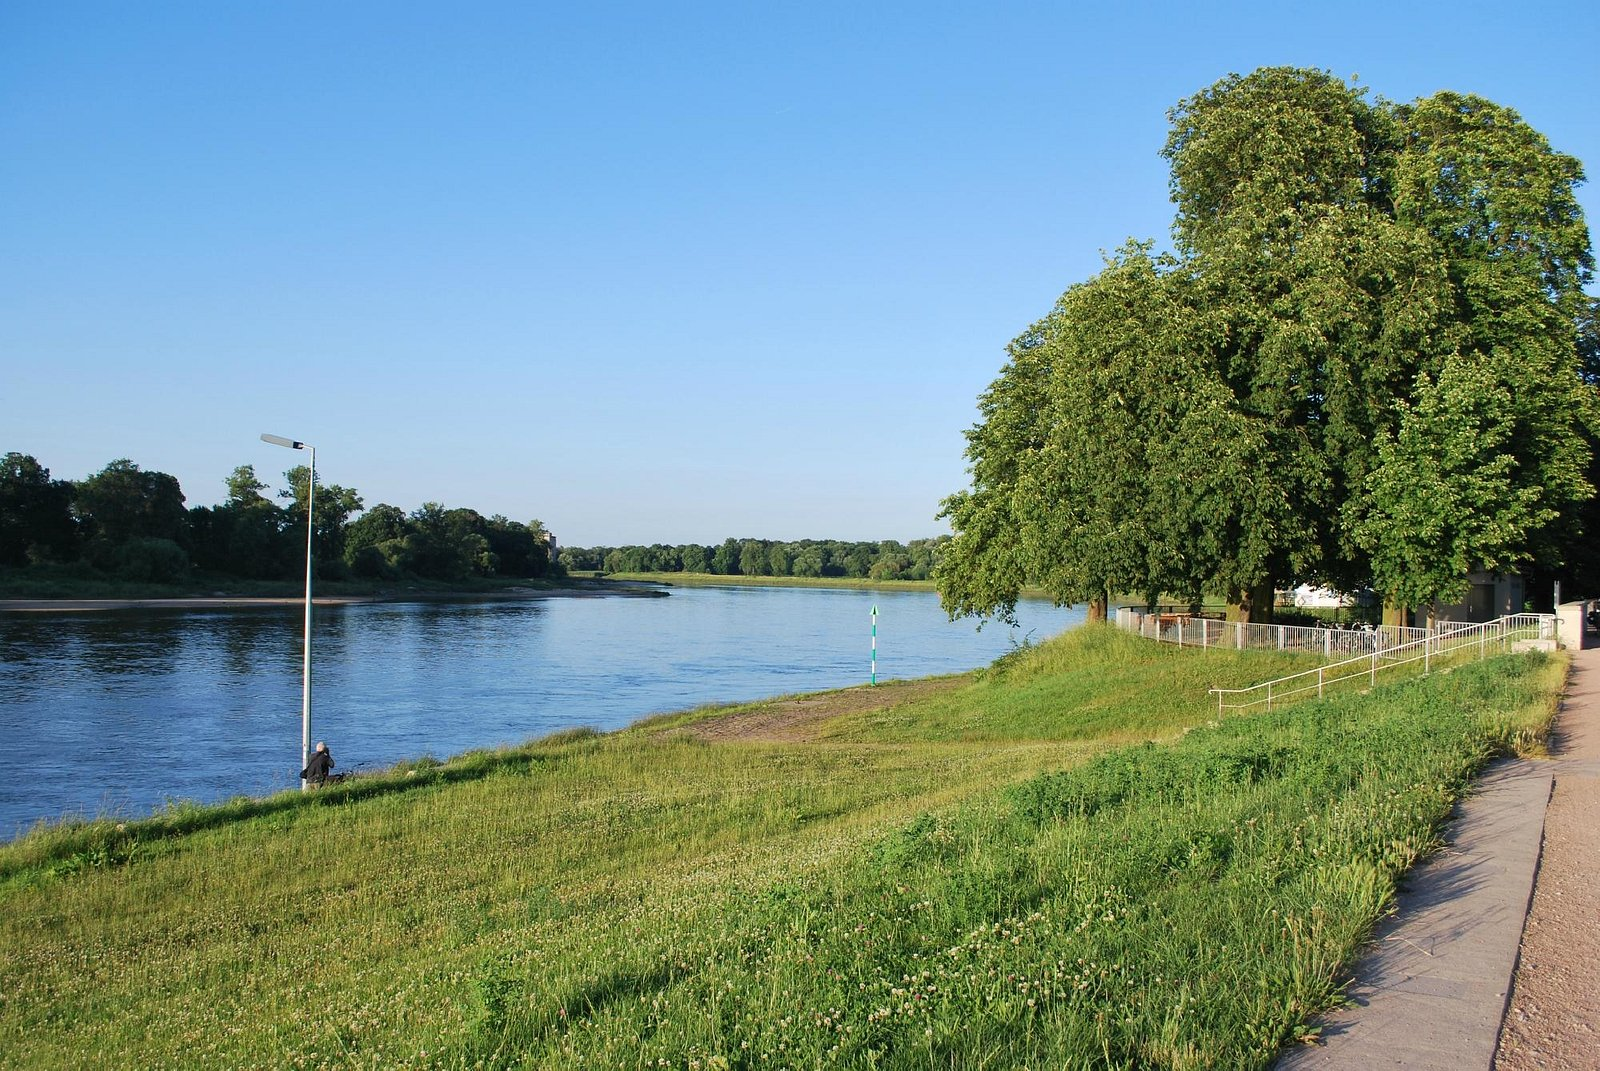 The bank of the river Elbe